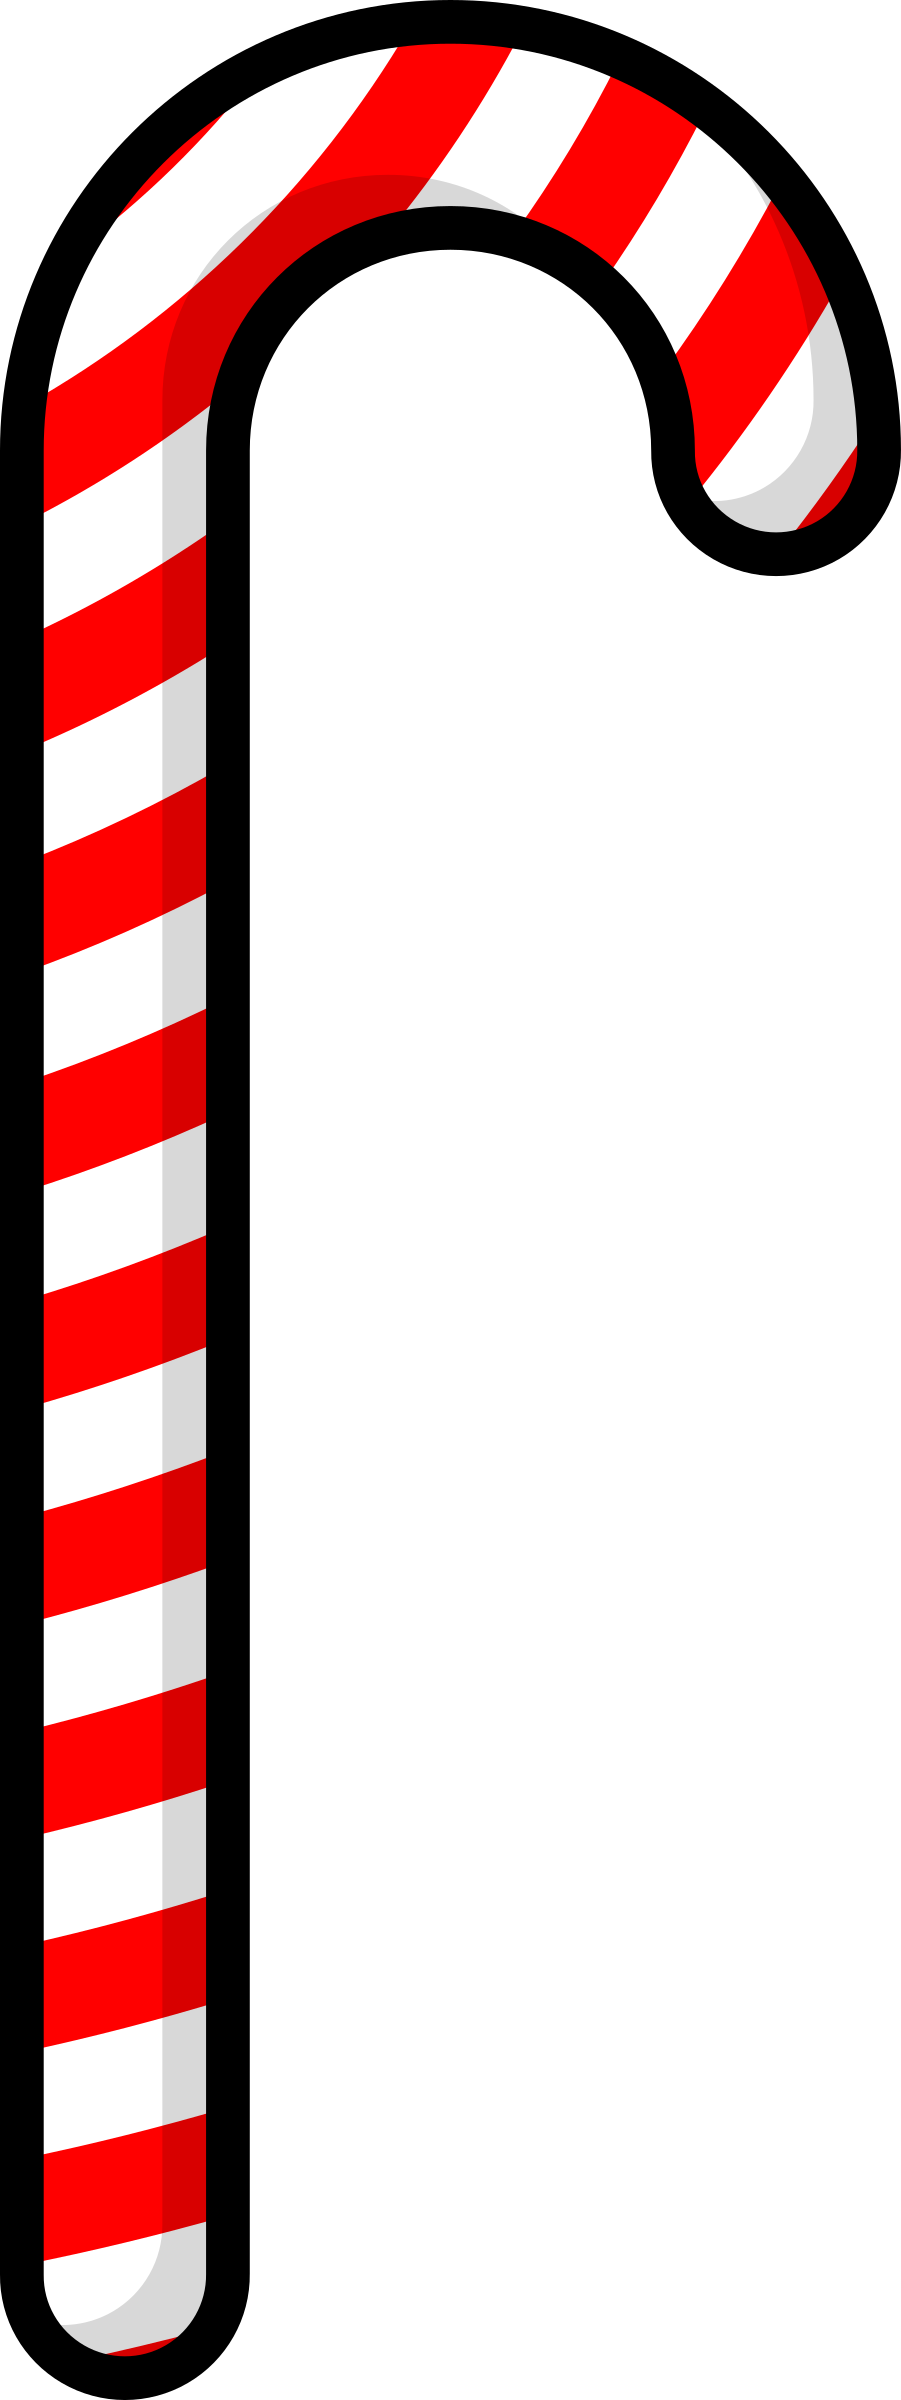 Candy cane pole clipart png library library Free Candy Cane Clip Art, Download Free Clip Art, Free Clip Art on ... png library library